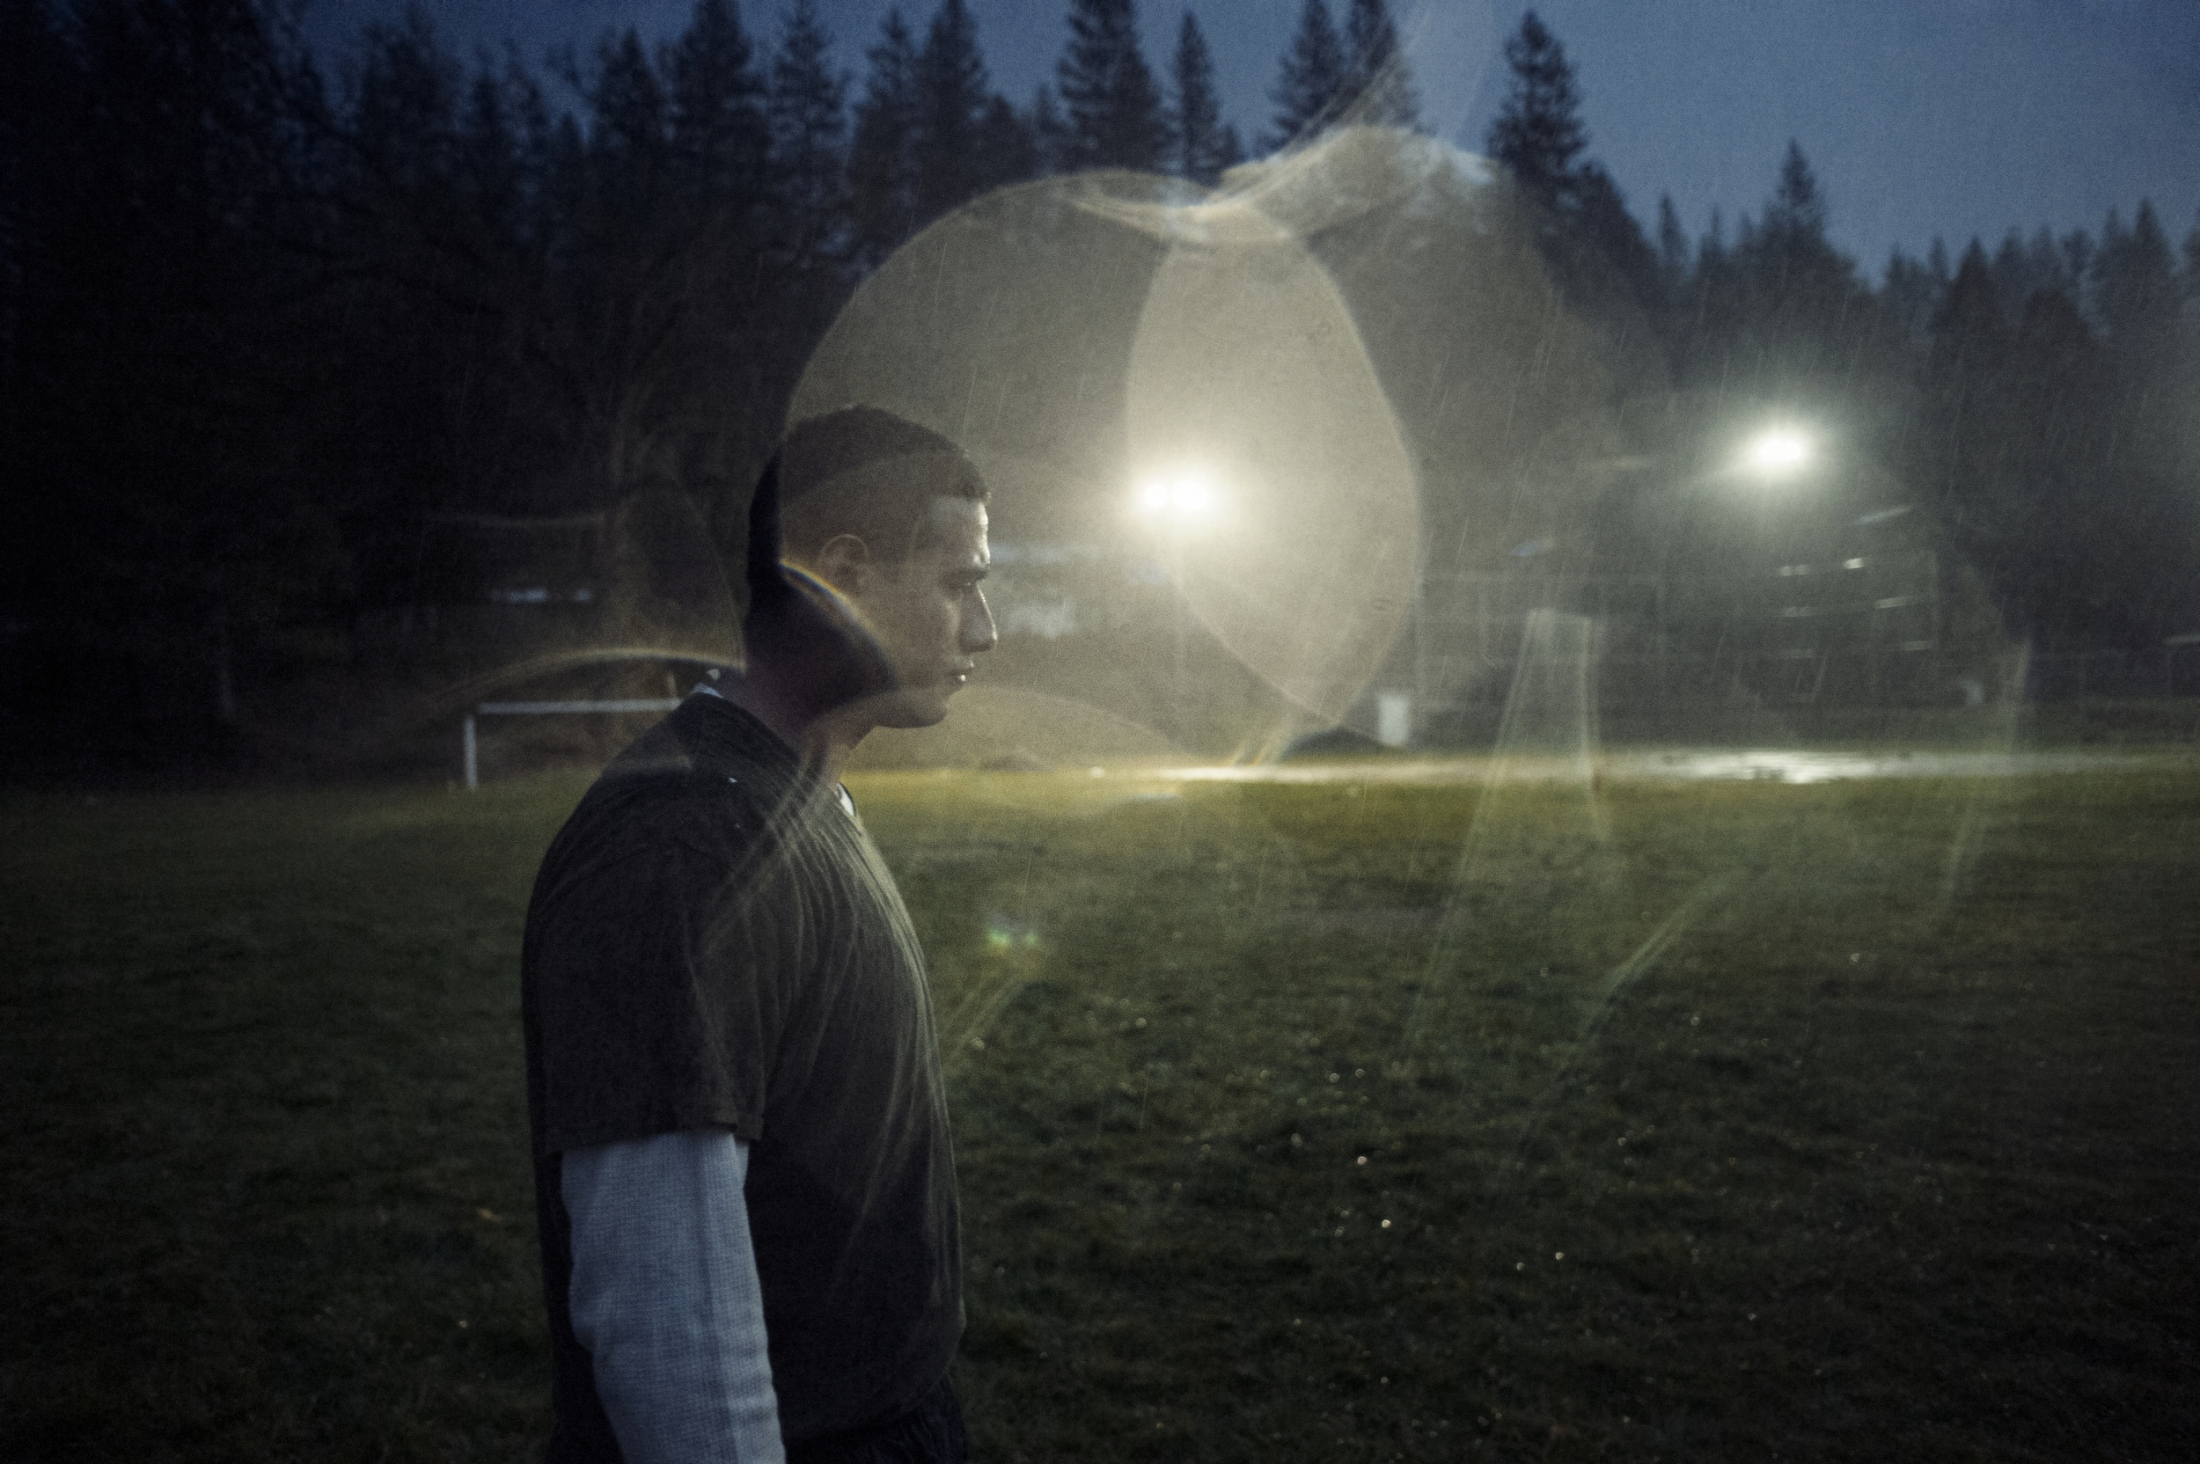 A Pine Grove inmate pauses between plays, while playing football in the pouring rain.  Earned by avoiding fights, the inmates cherished the few times they were allowed to play ball.